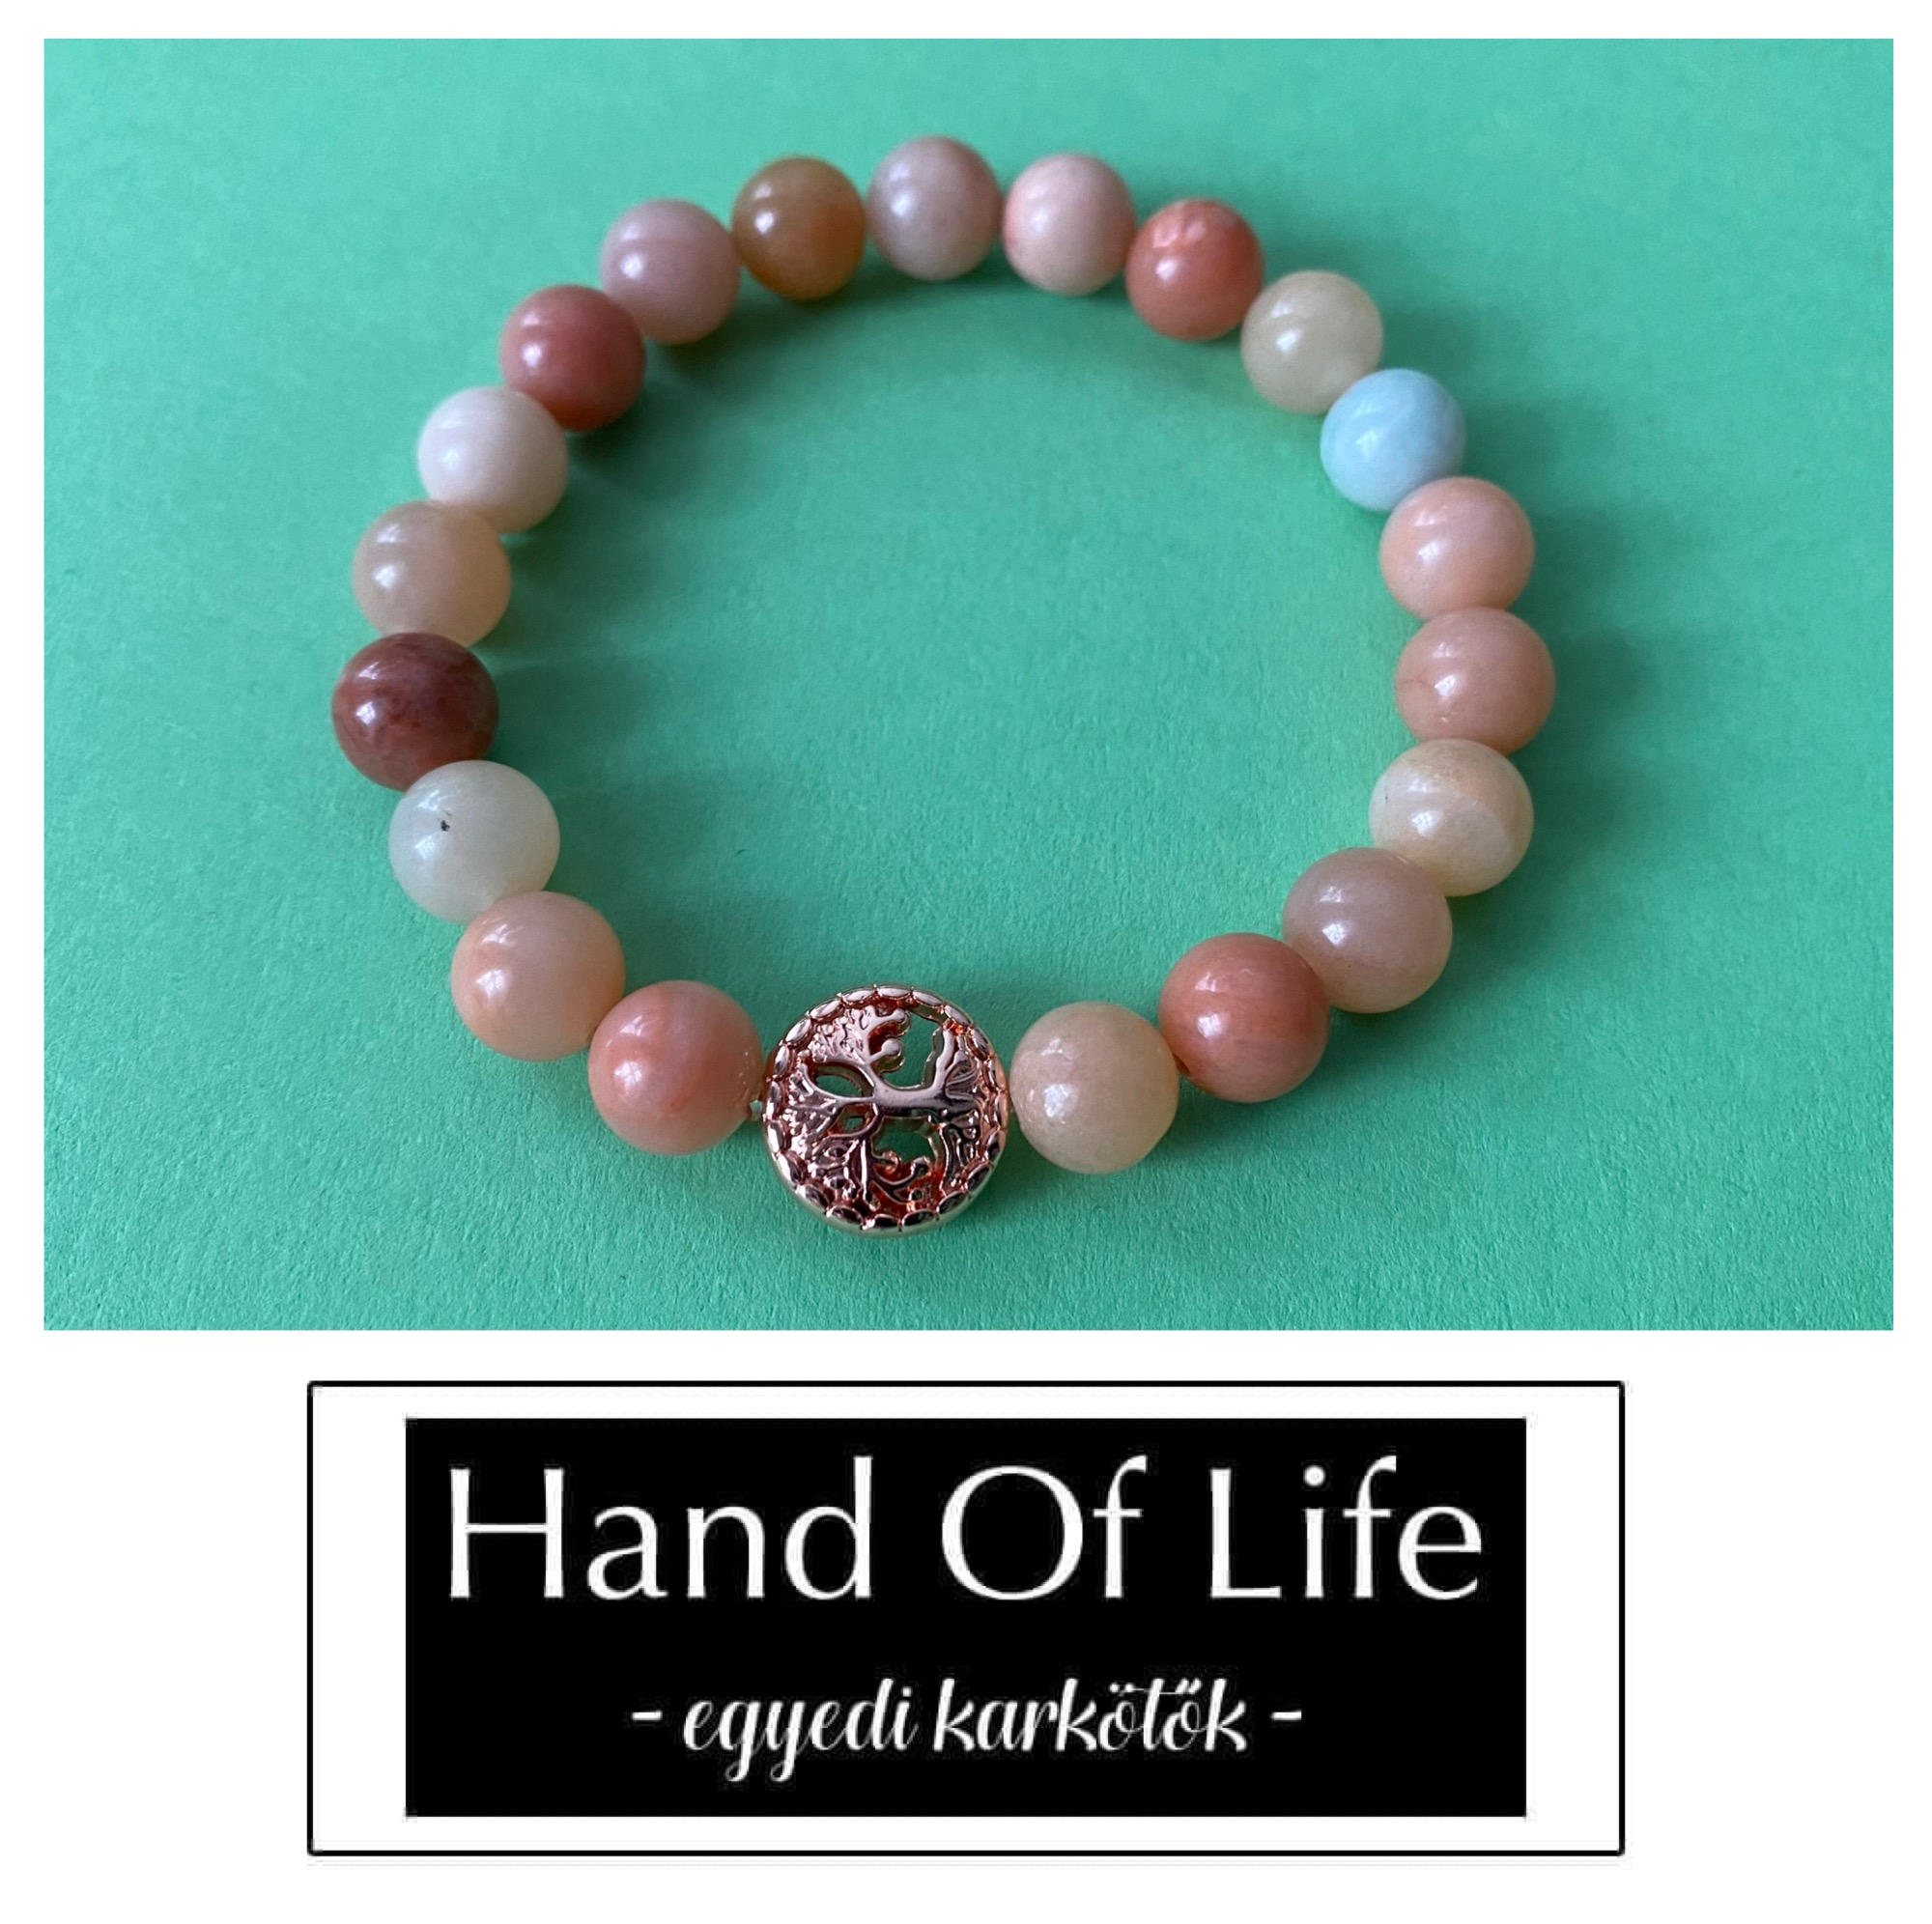 202101-250 Hand Of Life